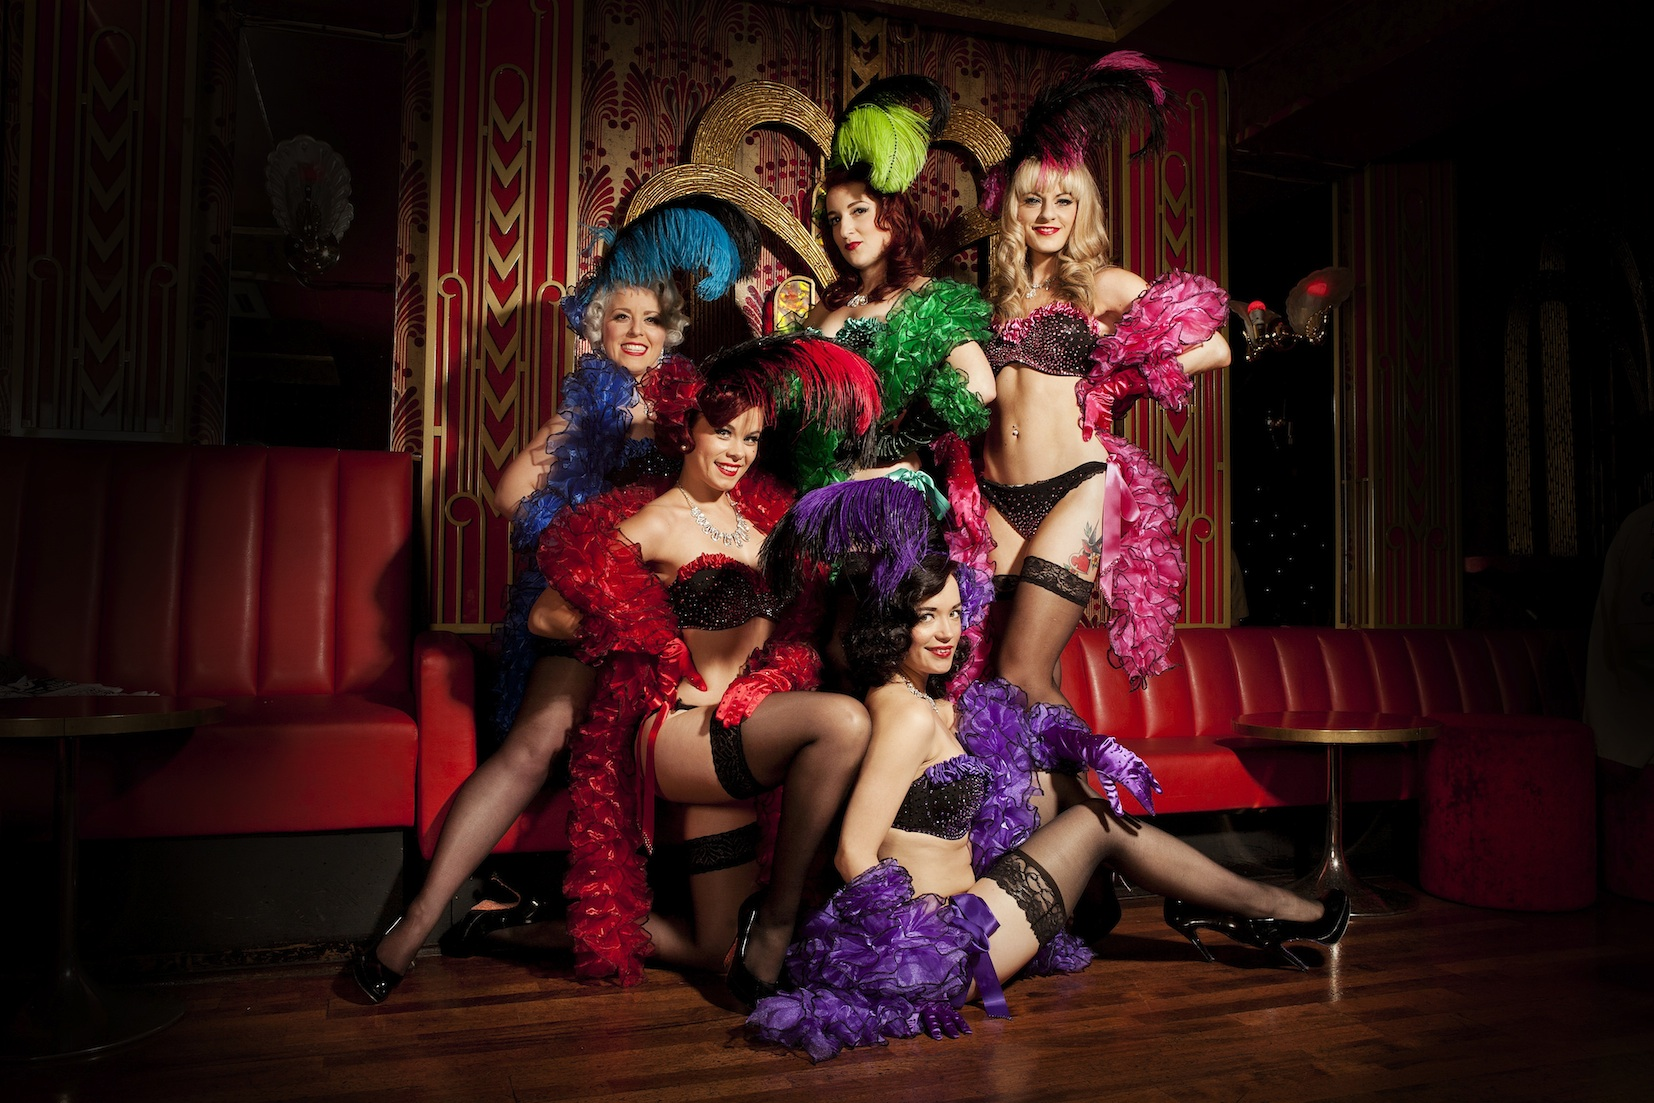 Seven Questions You Should Never Ask A Burlesque Performer